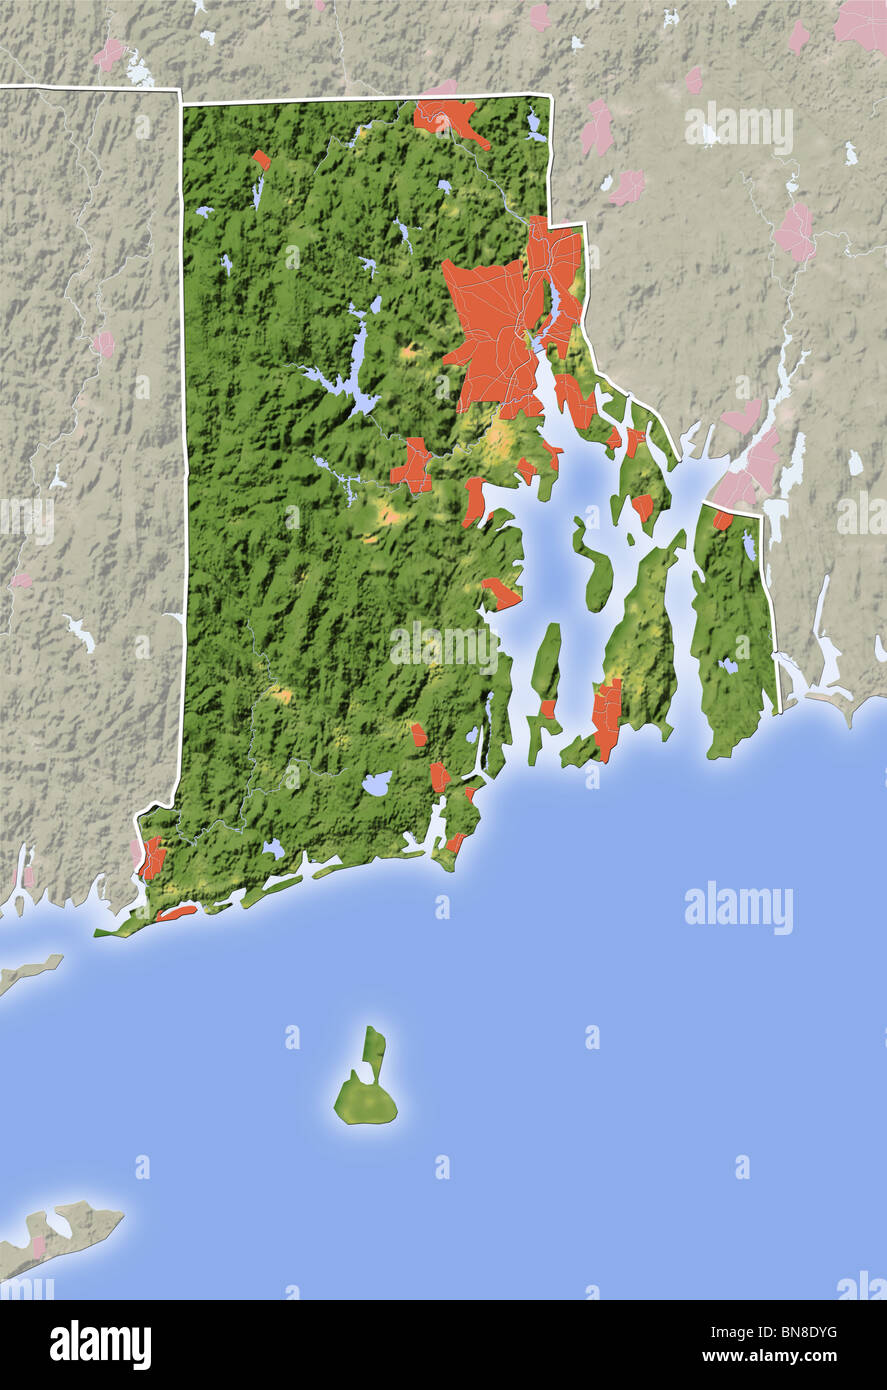 Rhode Island Shaded Relief Map Stock Photo Royalty Free Image - Rhode island physical map